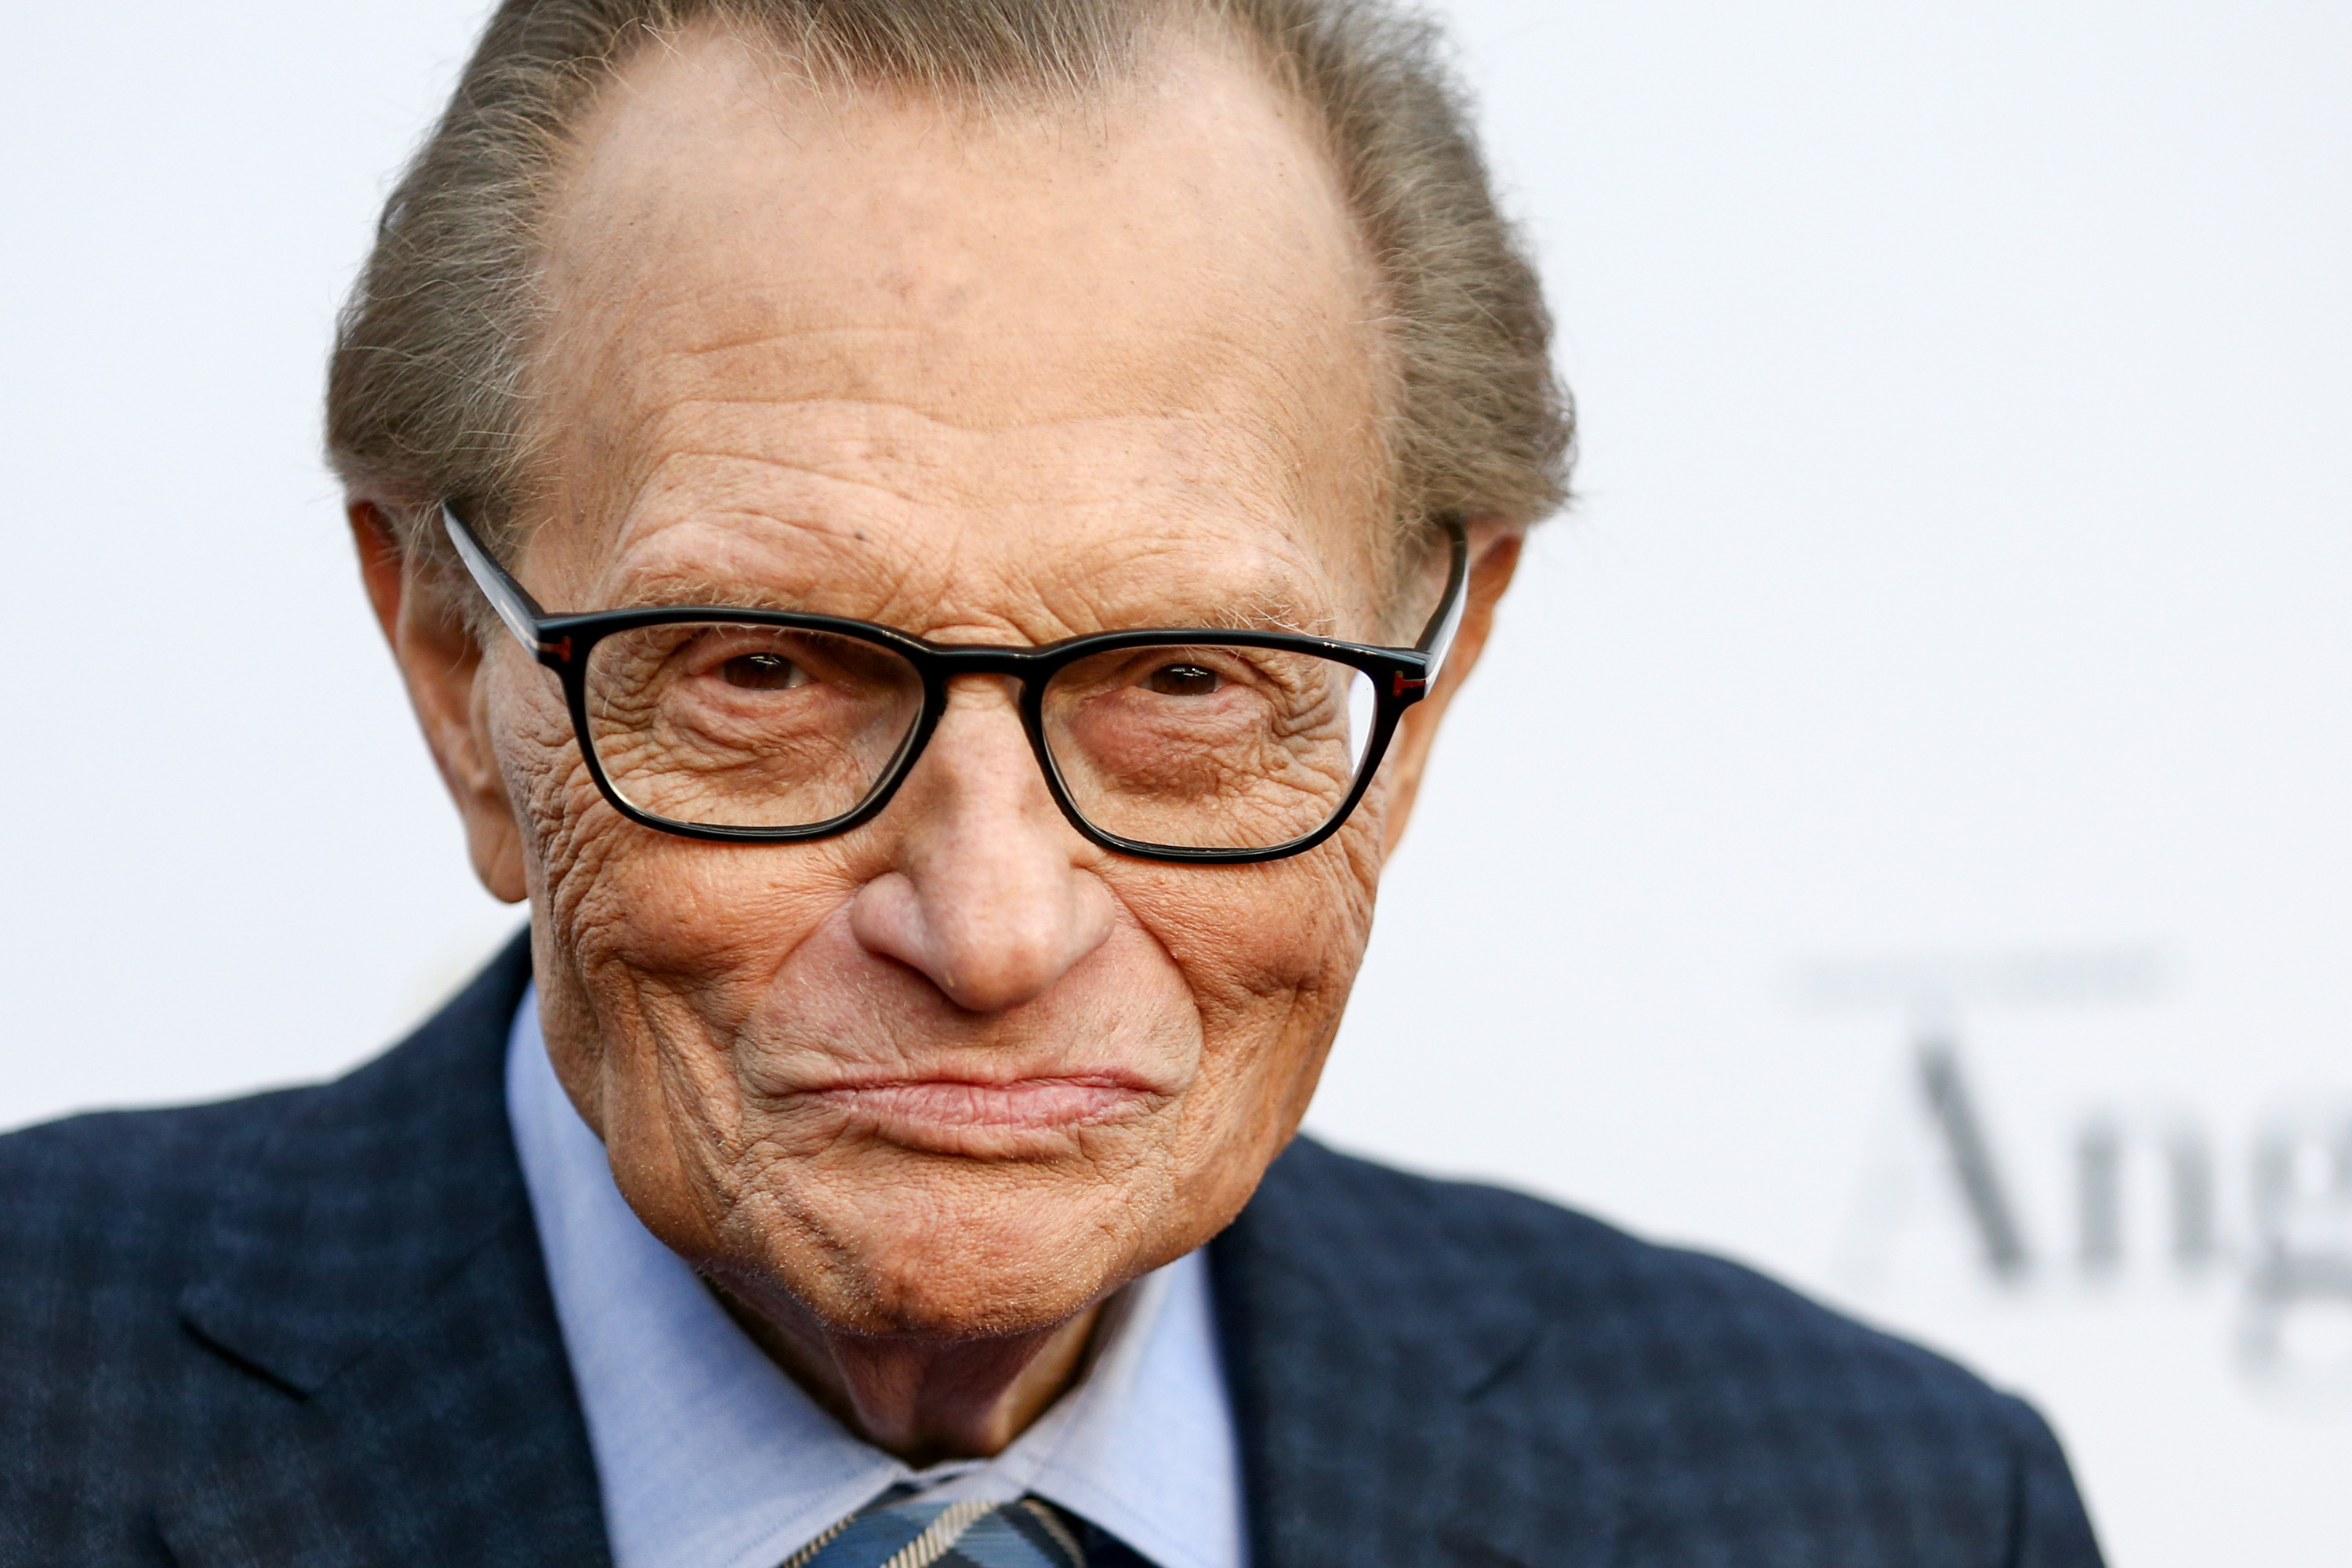 Larry King, 85, Says Surviving Cancer Made Him Feel Like the 'Billion Dollar Man' (Exclusive)